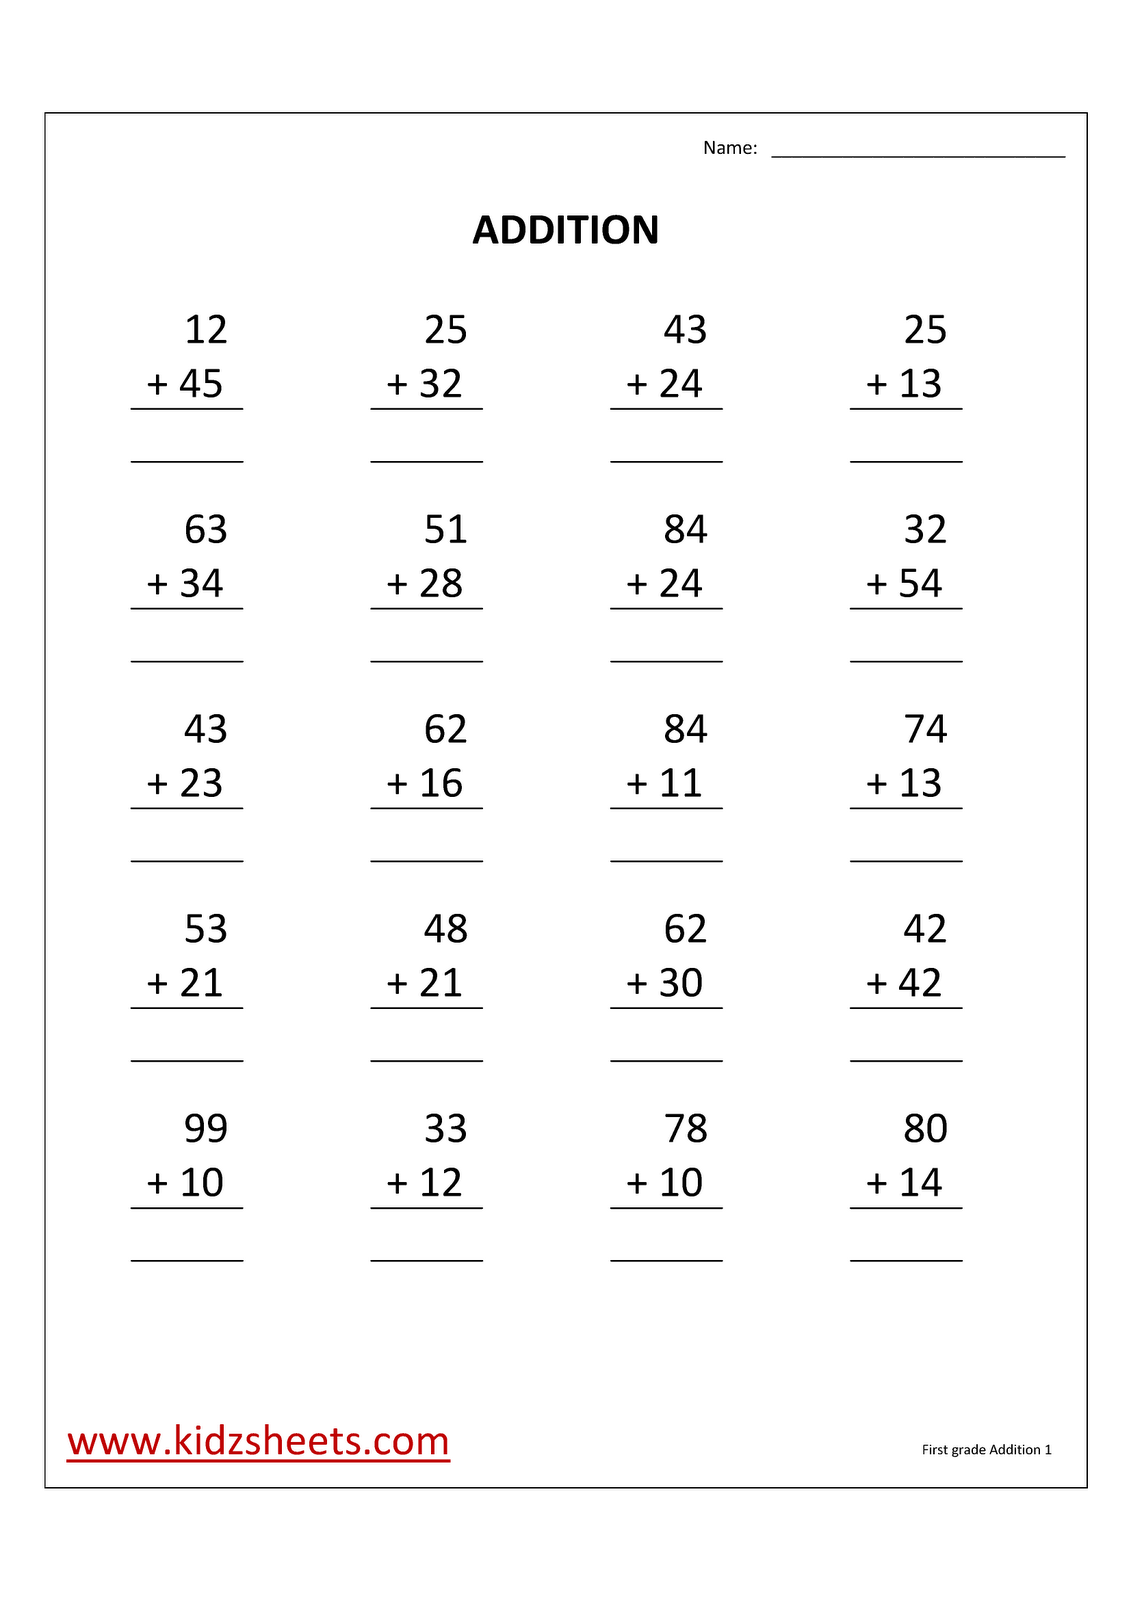 Kidz Worksheets First Grade Addition Worksheet1 – First Grade Addition Worksheets